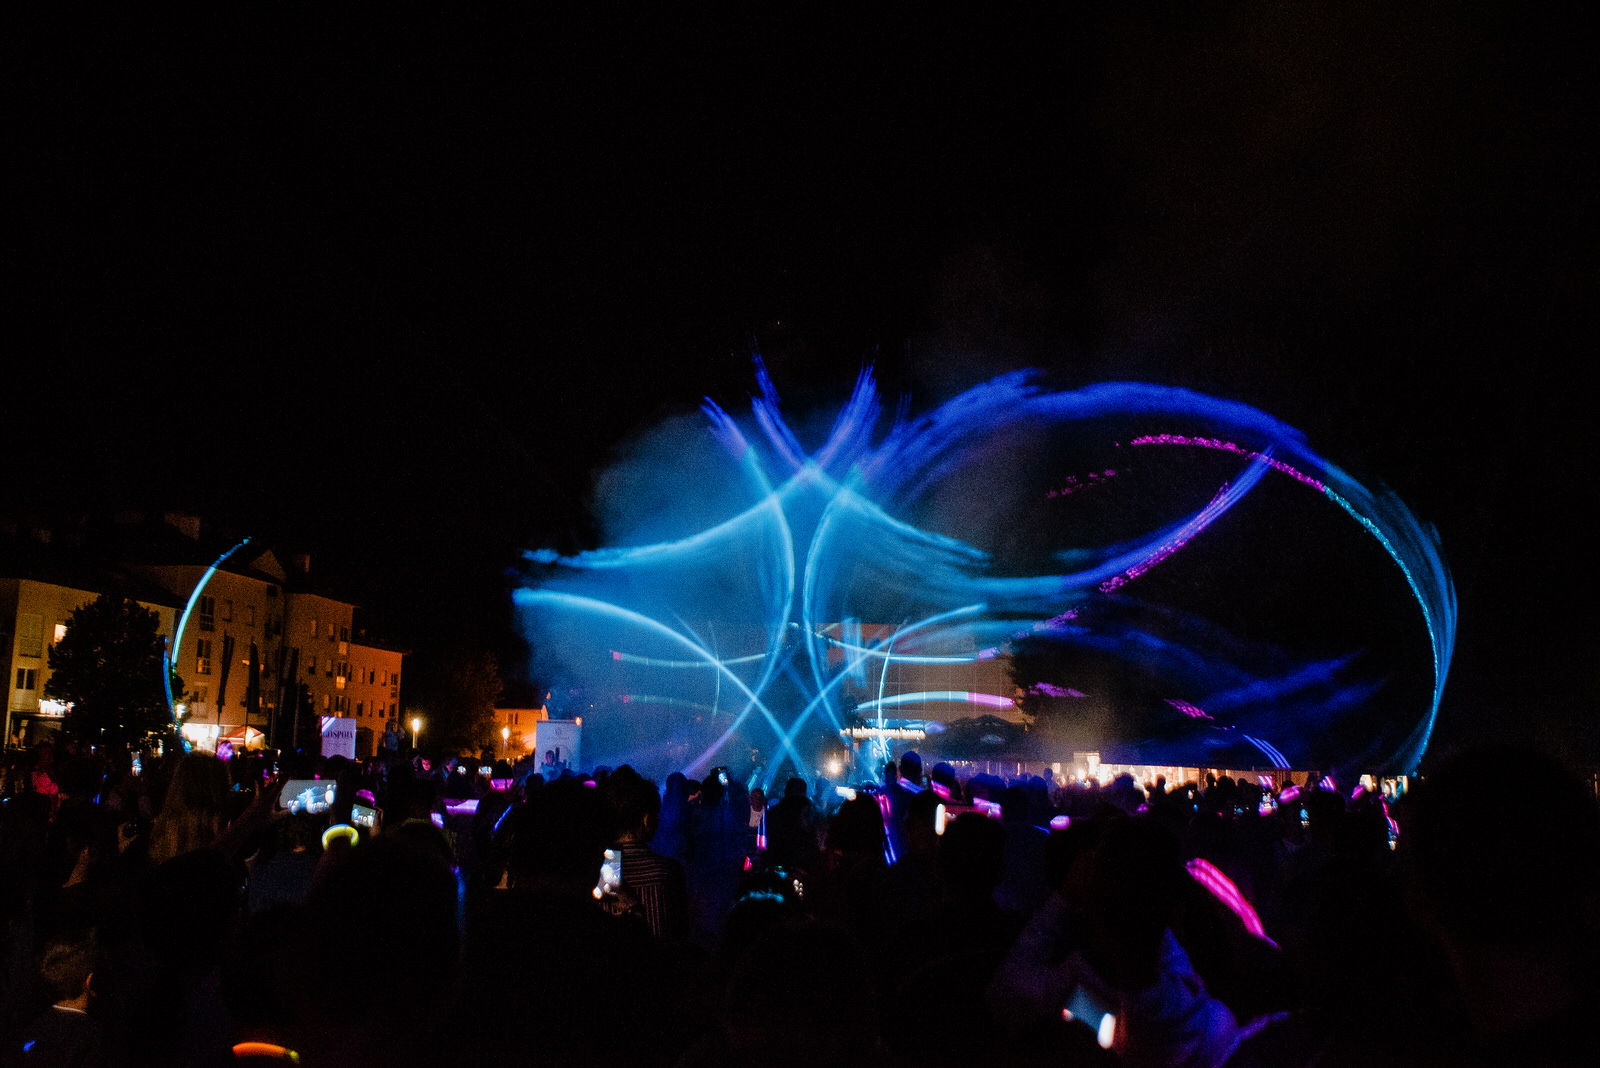 likaclub_gospić_tesla-light-show_2019-72